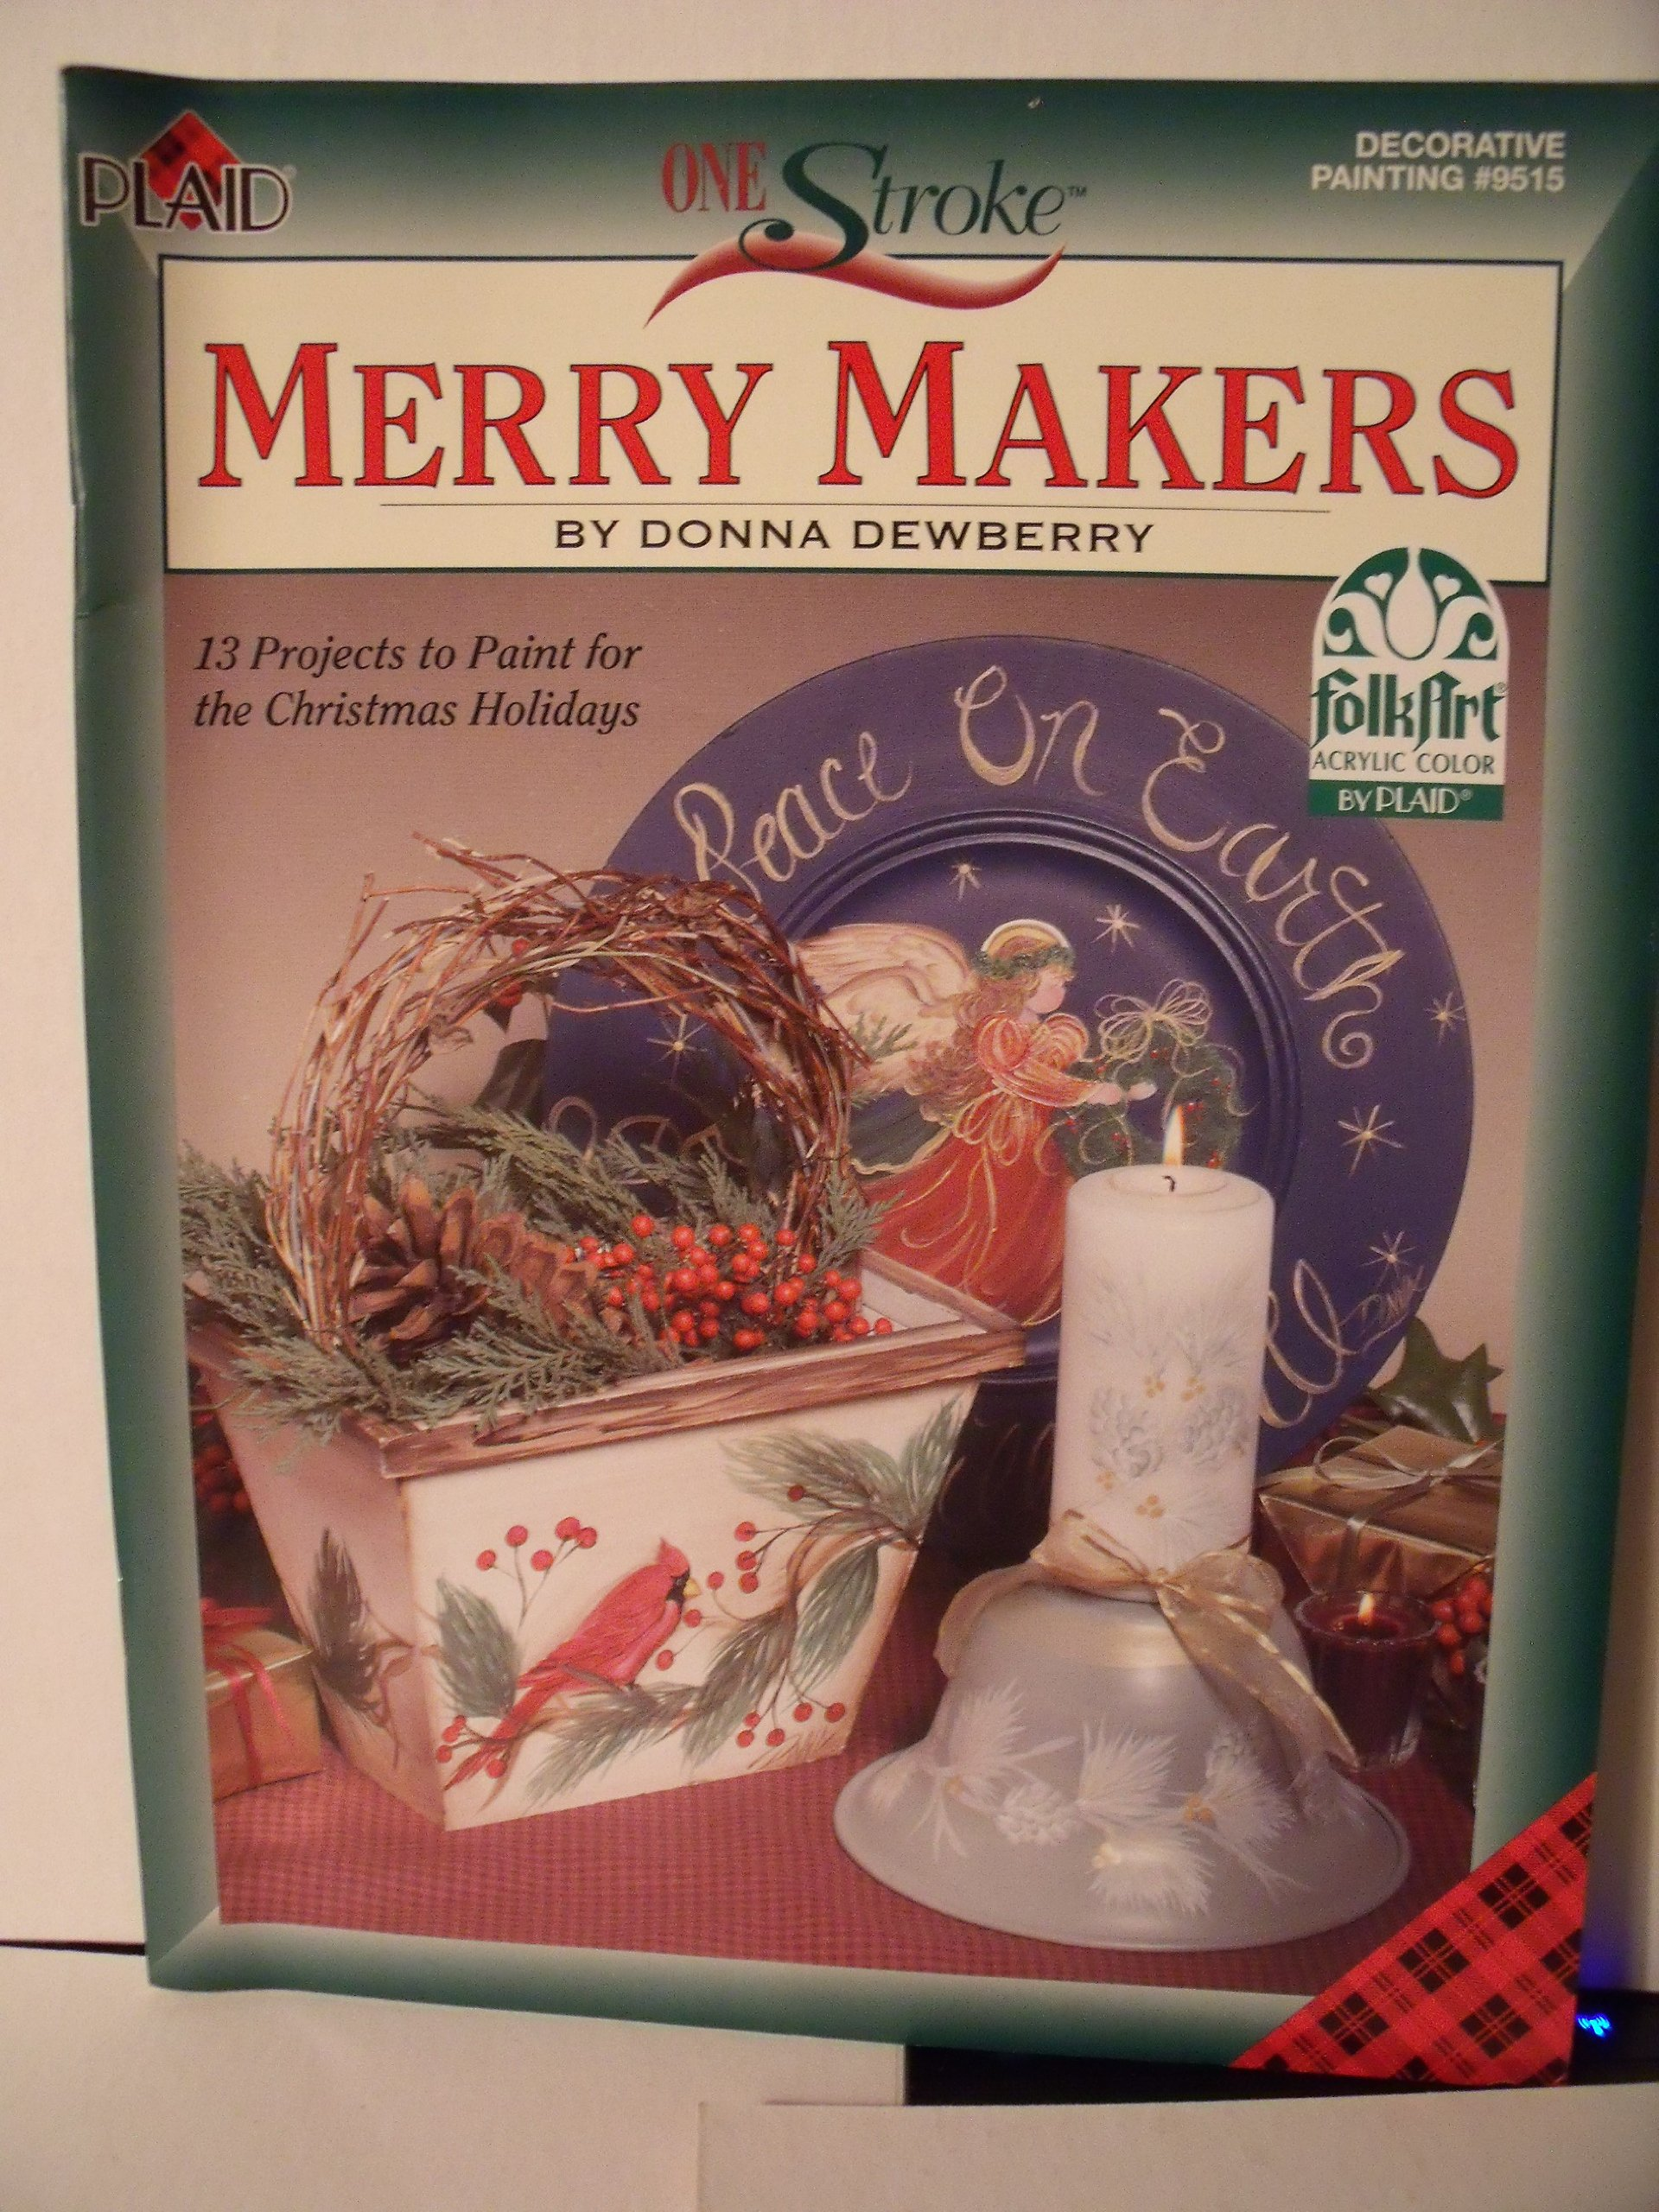 Plaid One Stroke Merry Makers: 13 Projects to Paint for the Christmas Holidays (Decorative Painting #9515) pdf